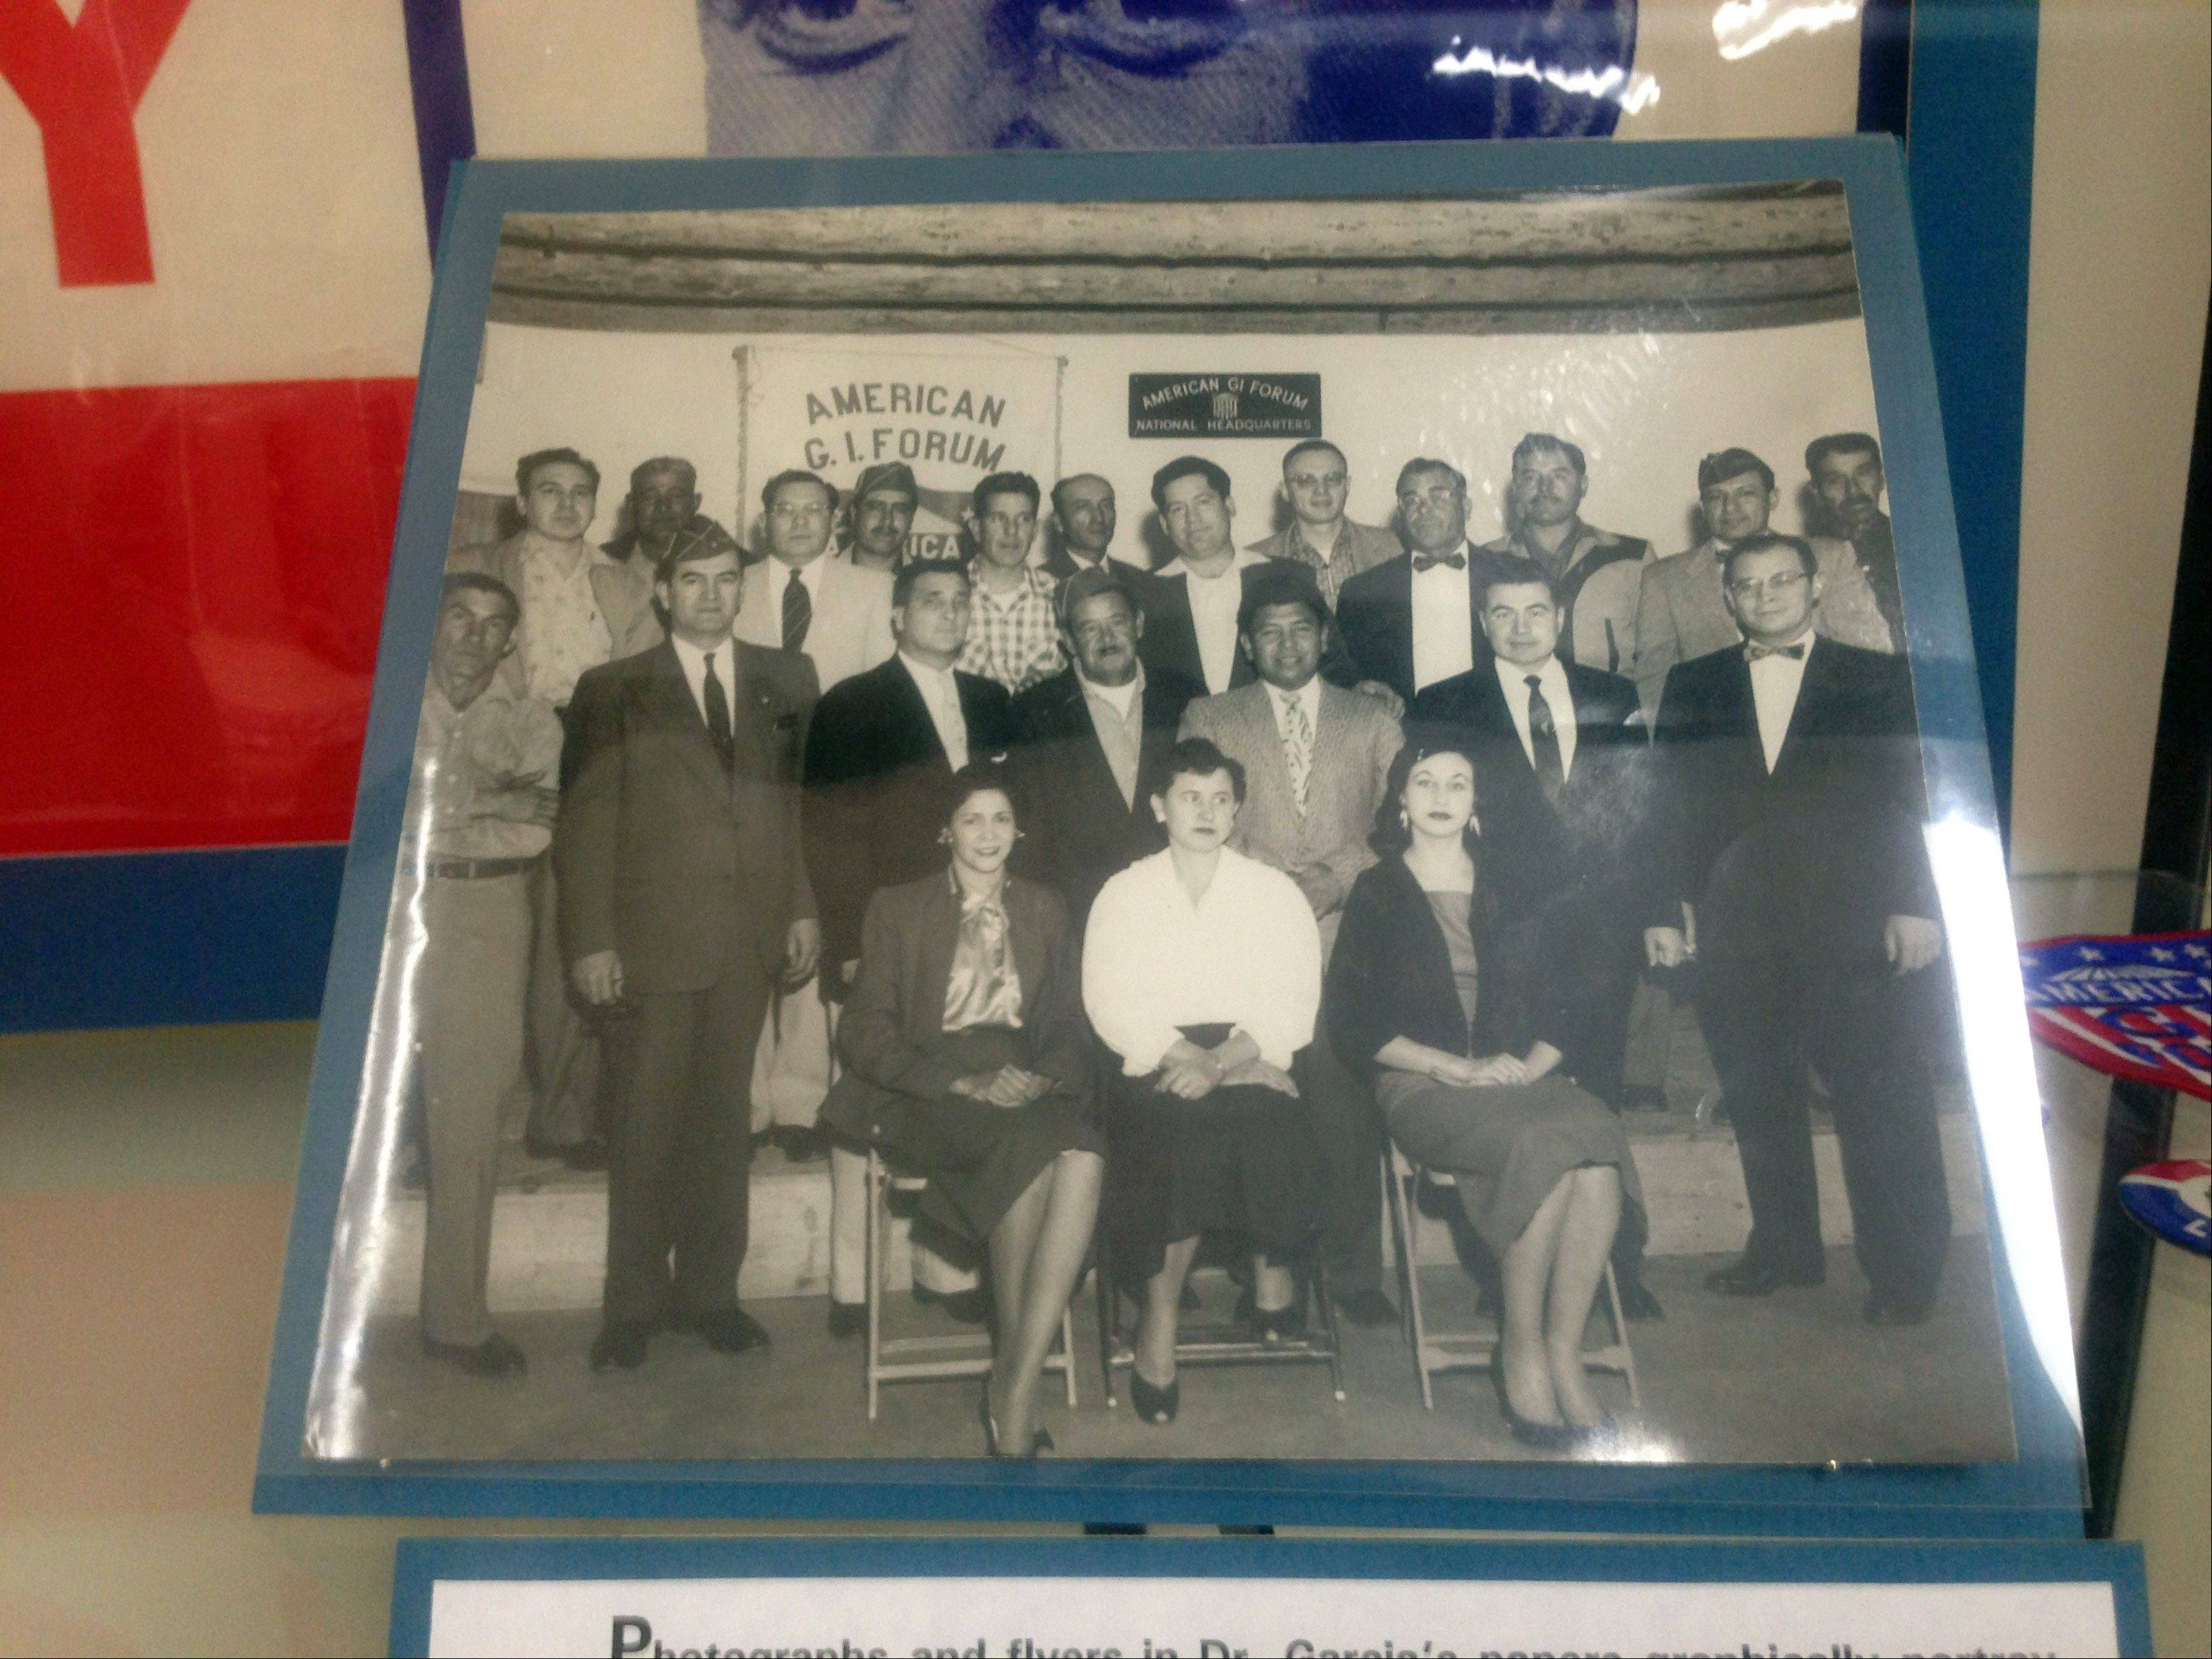 A photo of civil rights leader and G.I. Forum founder Dr. Hector P. Garcia is part of the Garcia exhibit at Texas A&M-Corpus Christi, Texas.